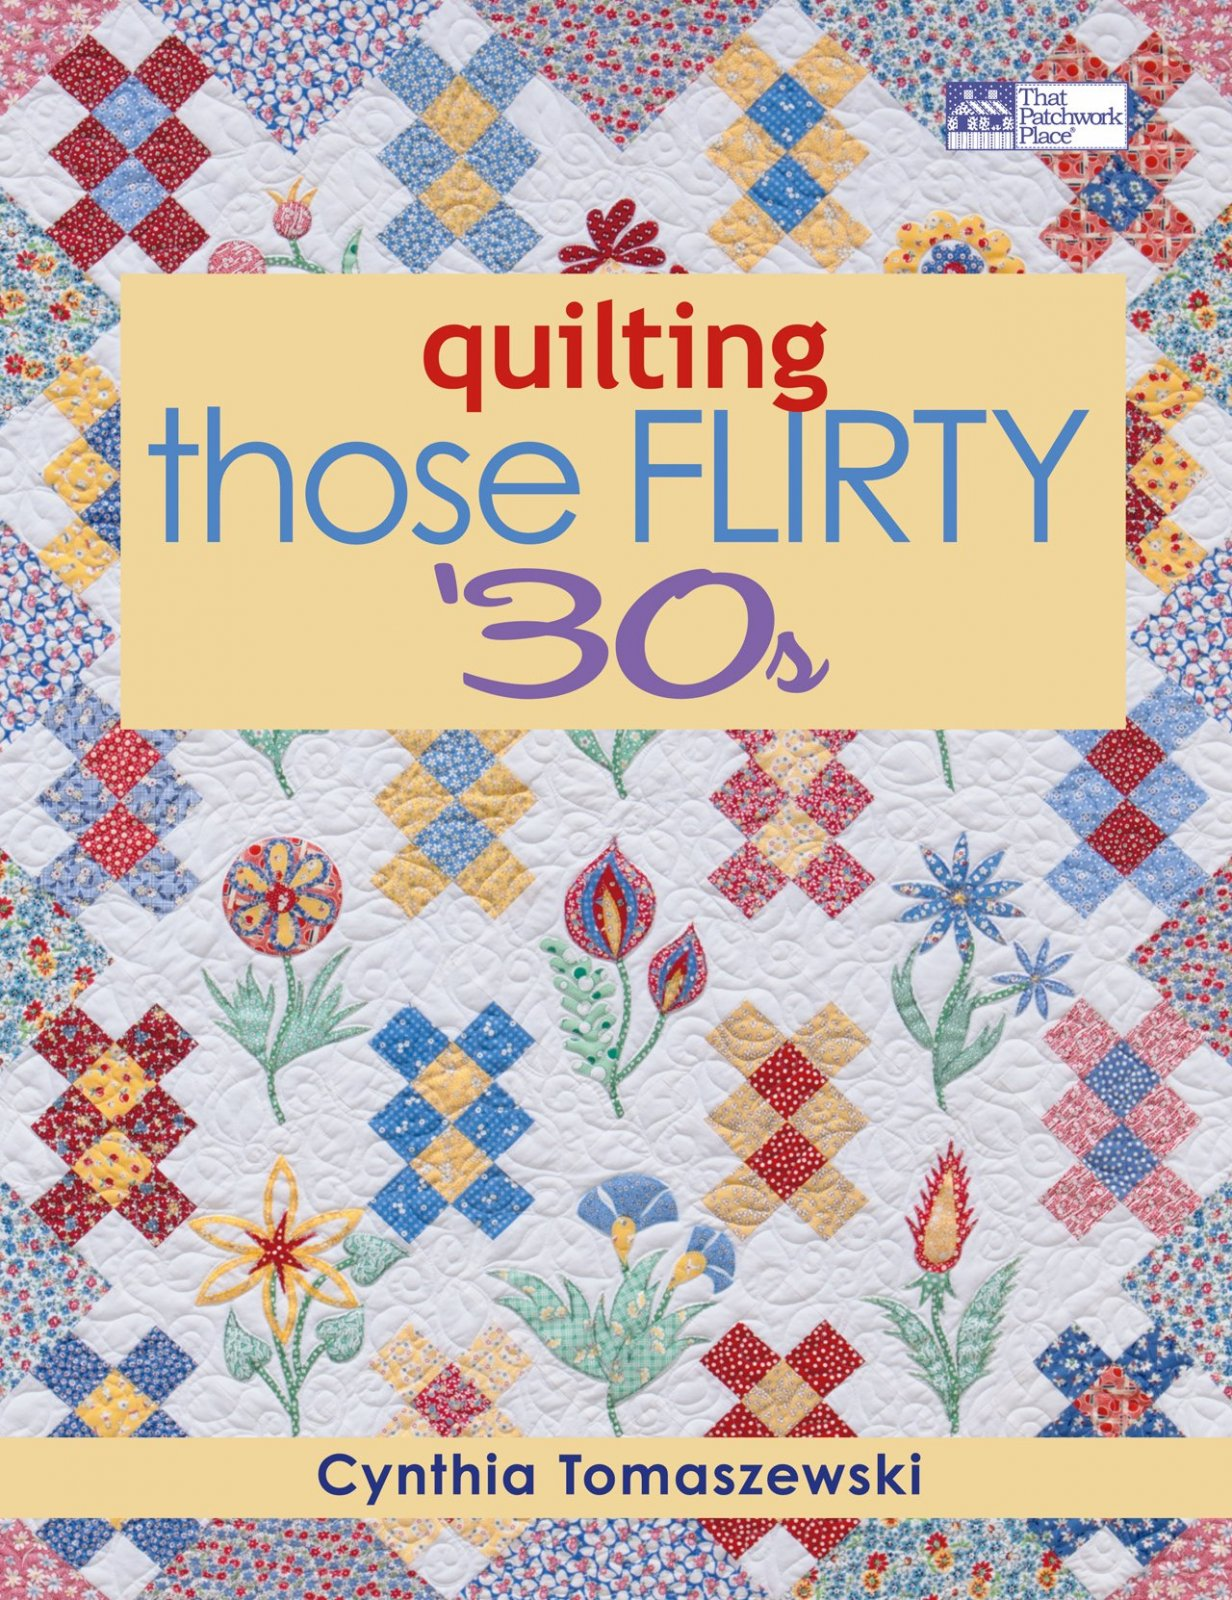 Quilting Those Flirty 30's